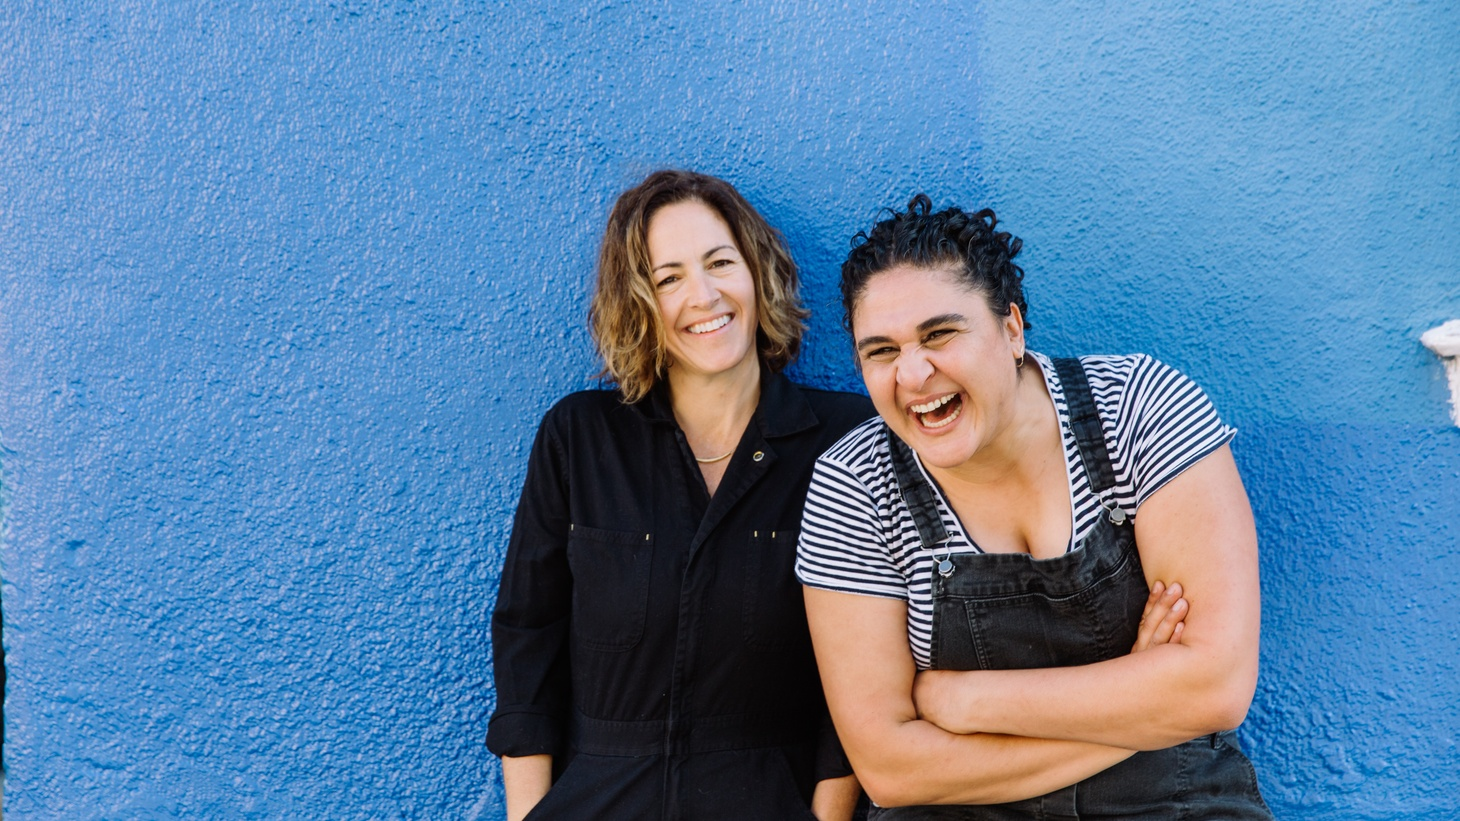 Samin Nosrat (right) convinced Wendy MacNaughton (left) to illustrate her first cookbook over coffee.